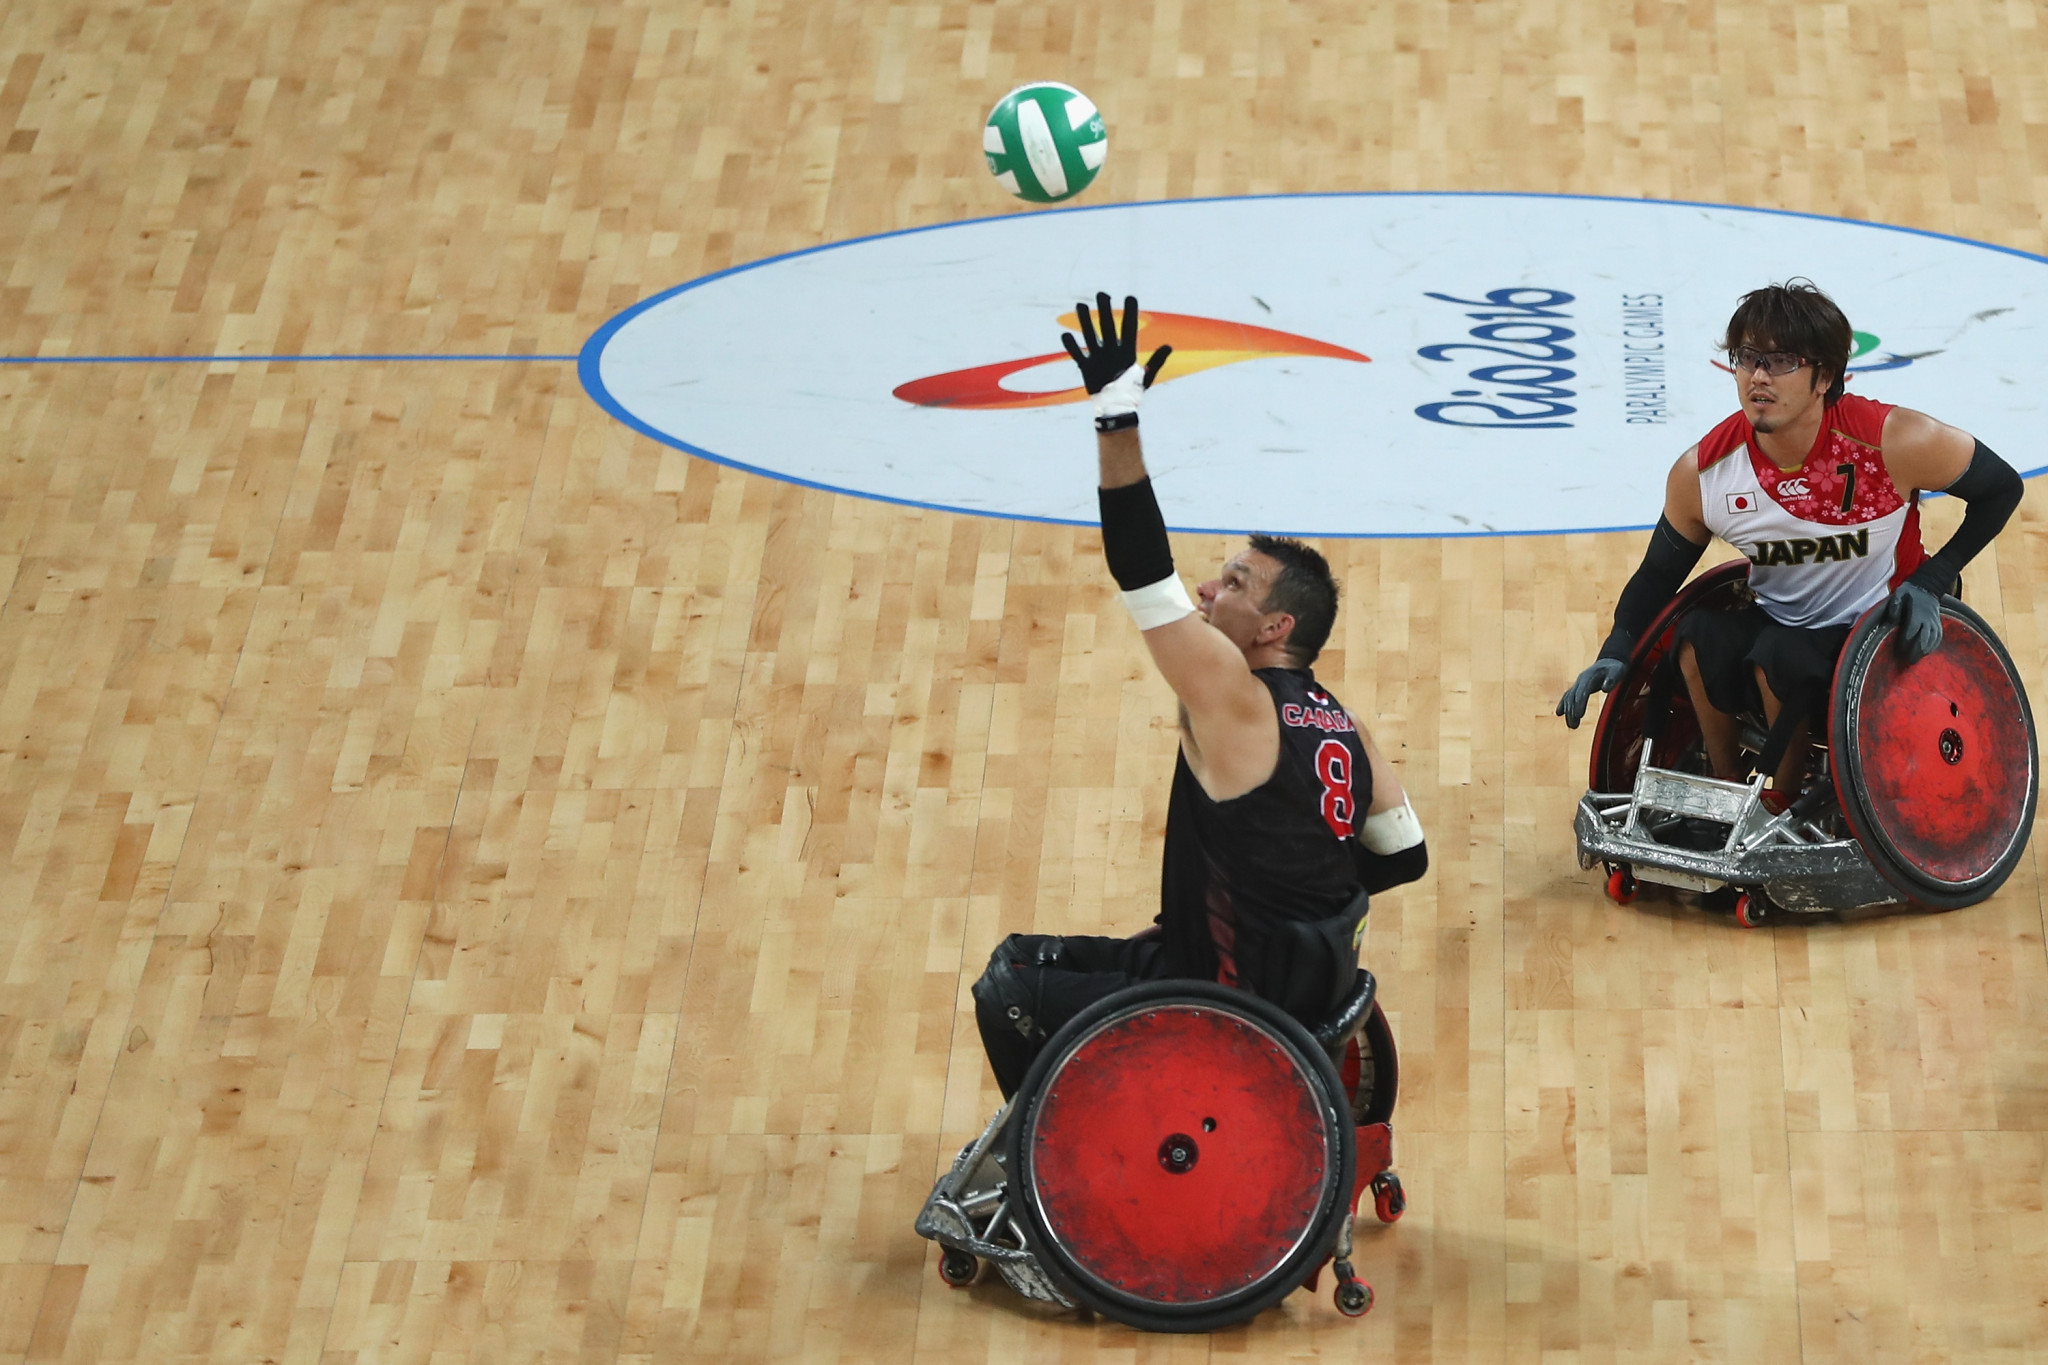 Japan beat Australia by one point in thrilling Wheelchair Rugby World Cup final